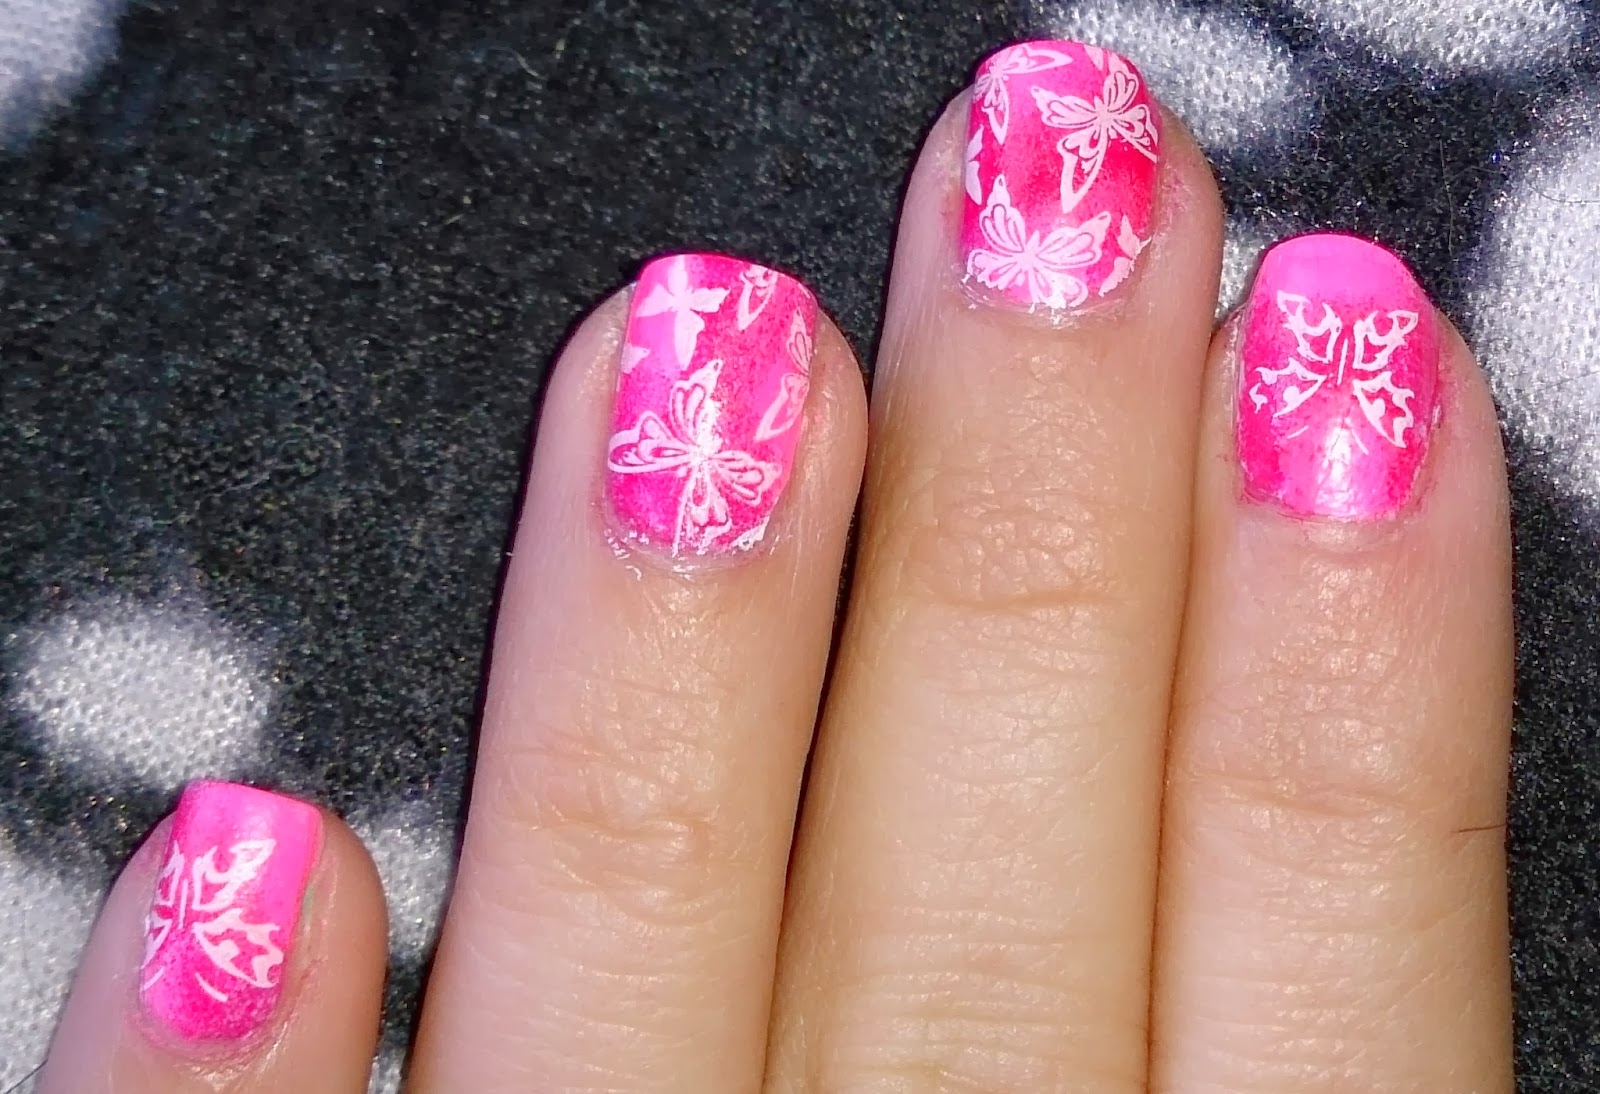 butterfly butterflies nail stamping stamp tutorial how to bundle monster plates pink ombre makeup sponge technique